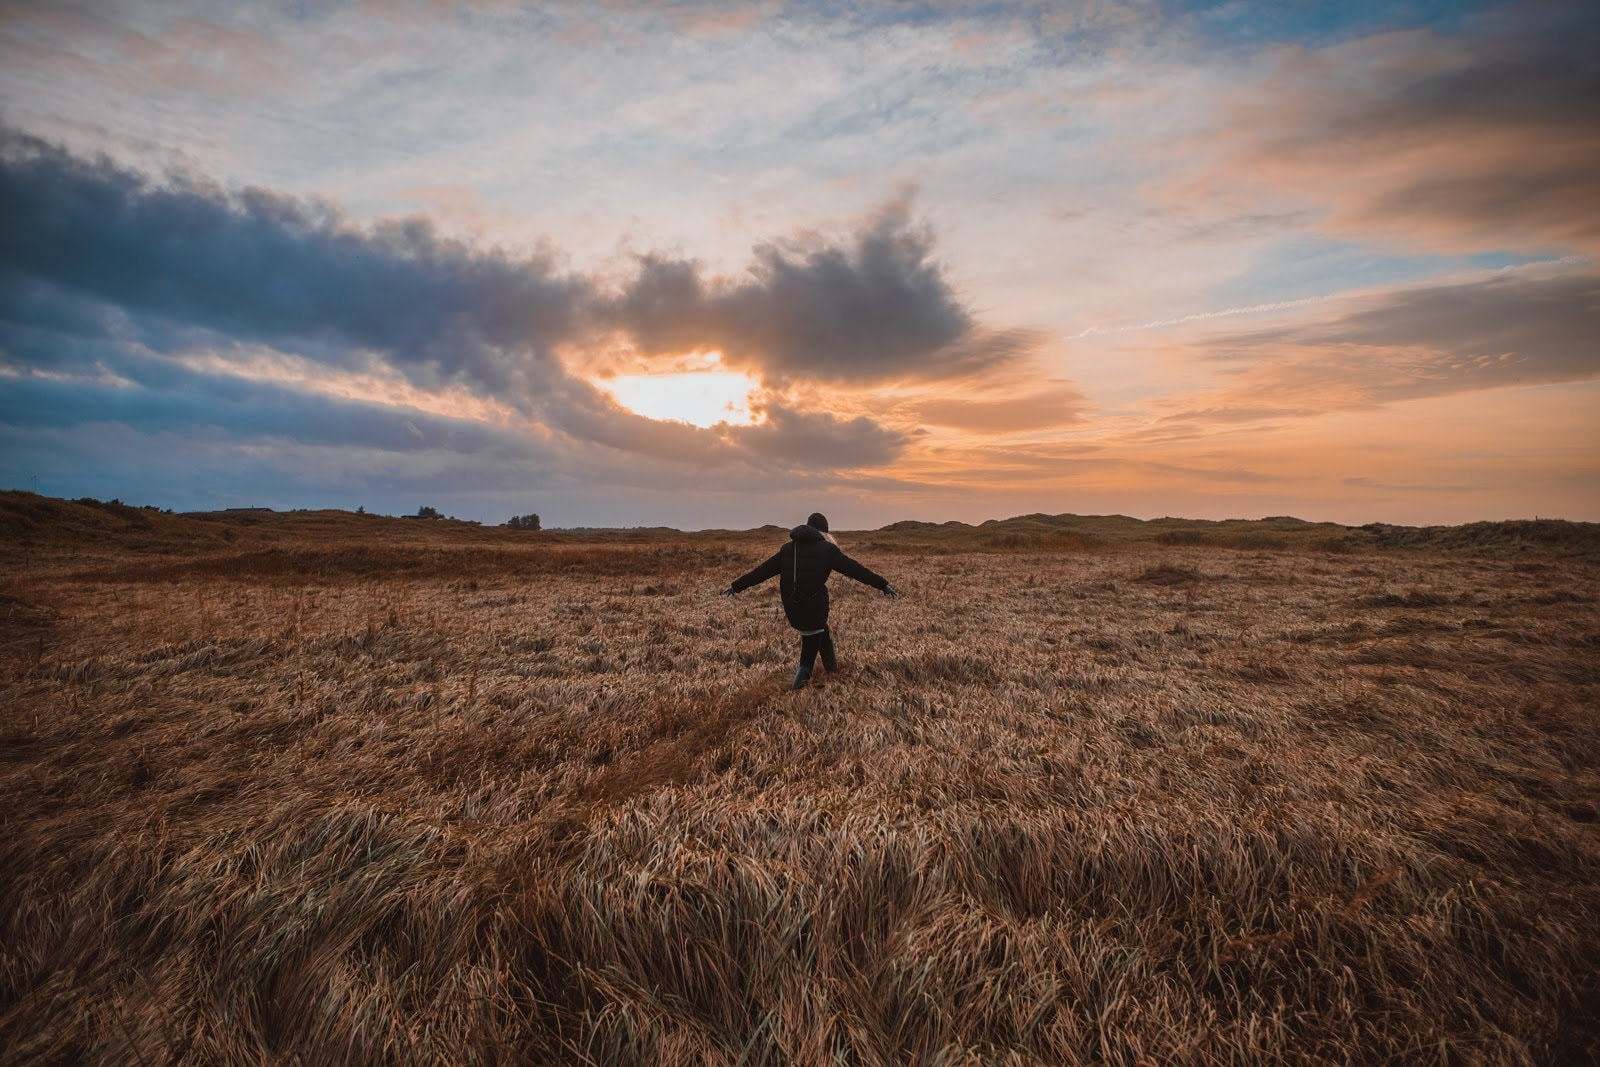 Person walking in a field during the golden hour by Soren Astrup Jorgensen